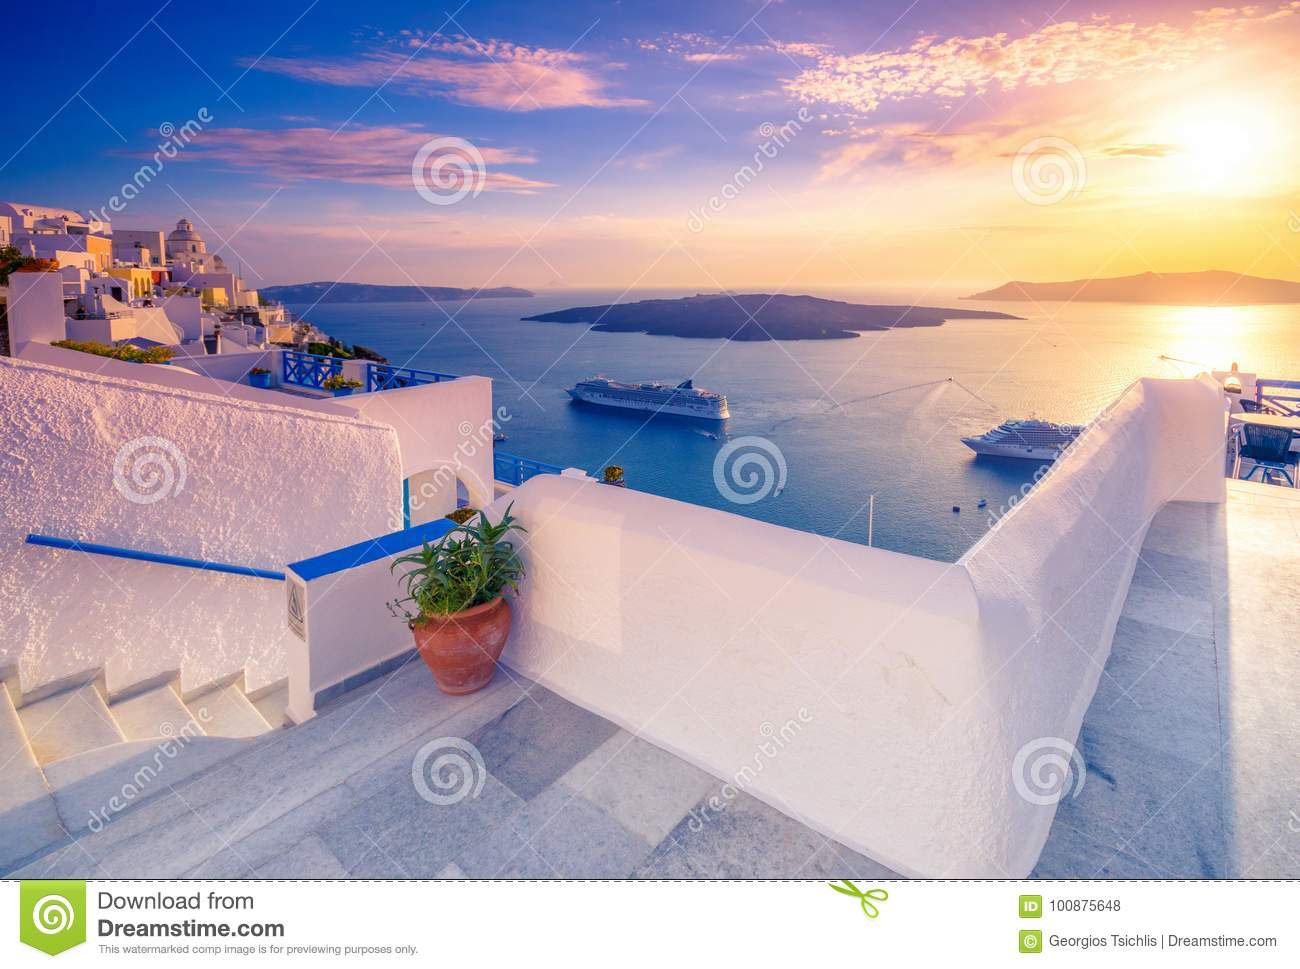 Download Amazing Evening View Of Fira, Caldera, Volcano Of Santorini, Greece. Stock Photo - Image of culture, caldera: 100875648